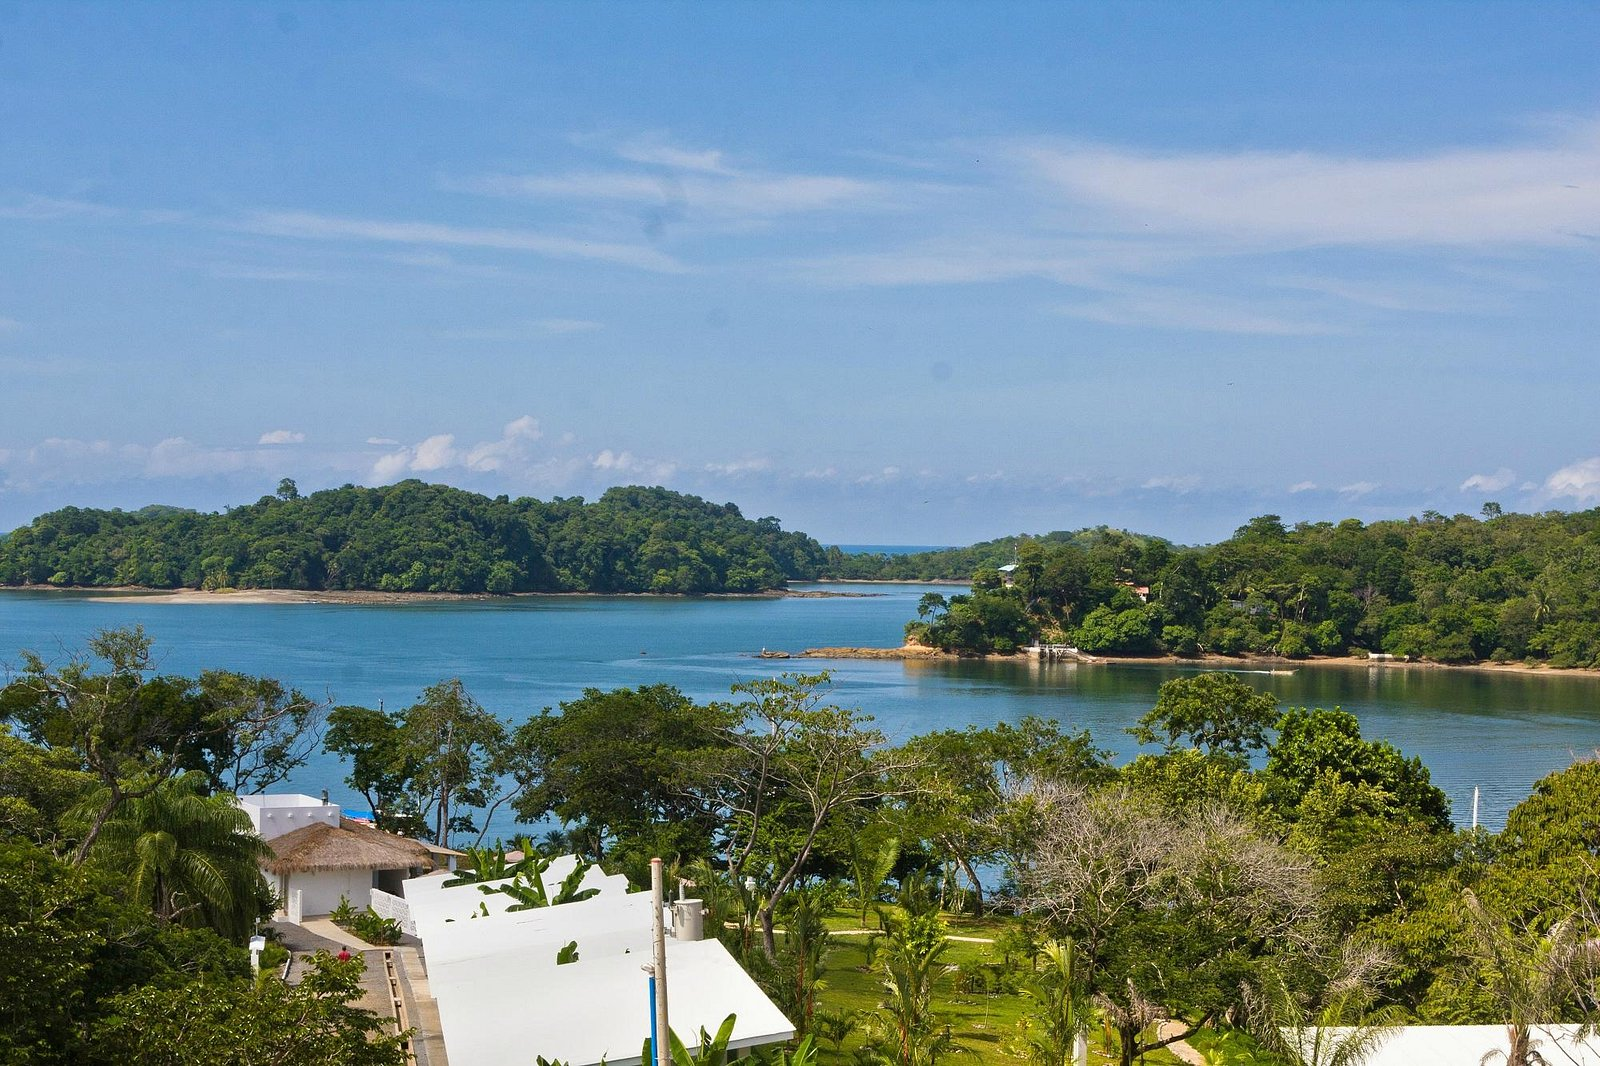 Boca Chica sound & Gulf islands from Bocas del Mar viewpoint